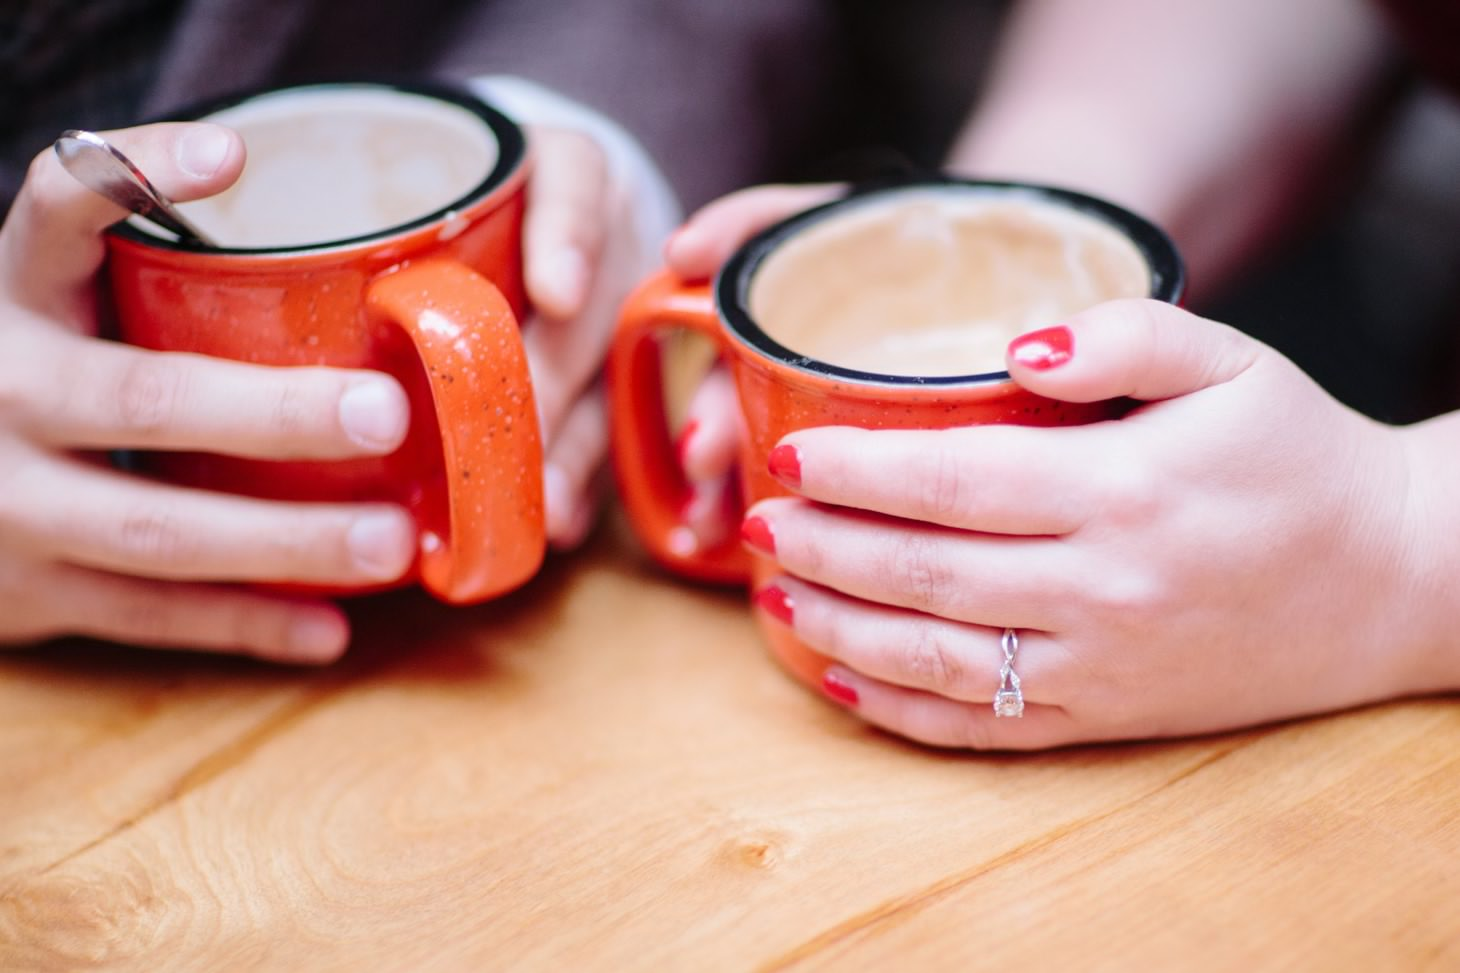 001-nyc-wedding-photographer-puppy-museum-of-natural-history-mud-coffee-fall-central-park-engagement.jpg